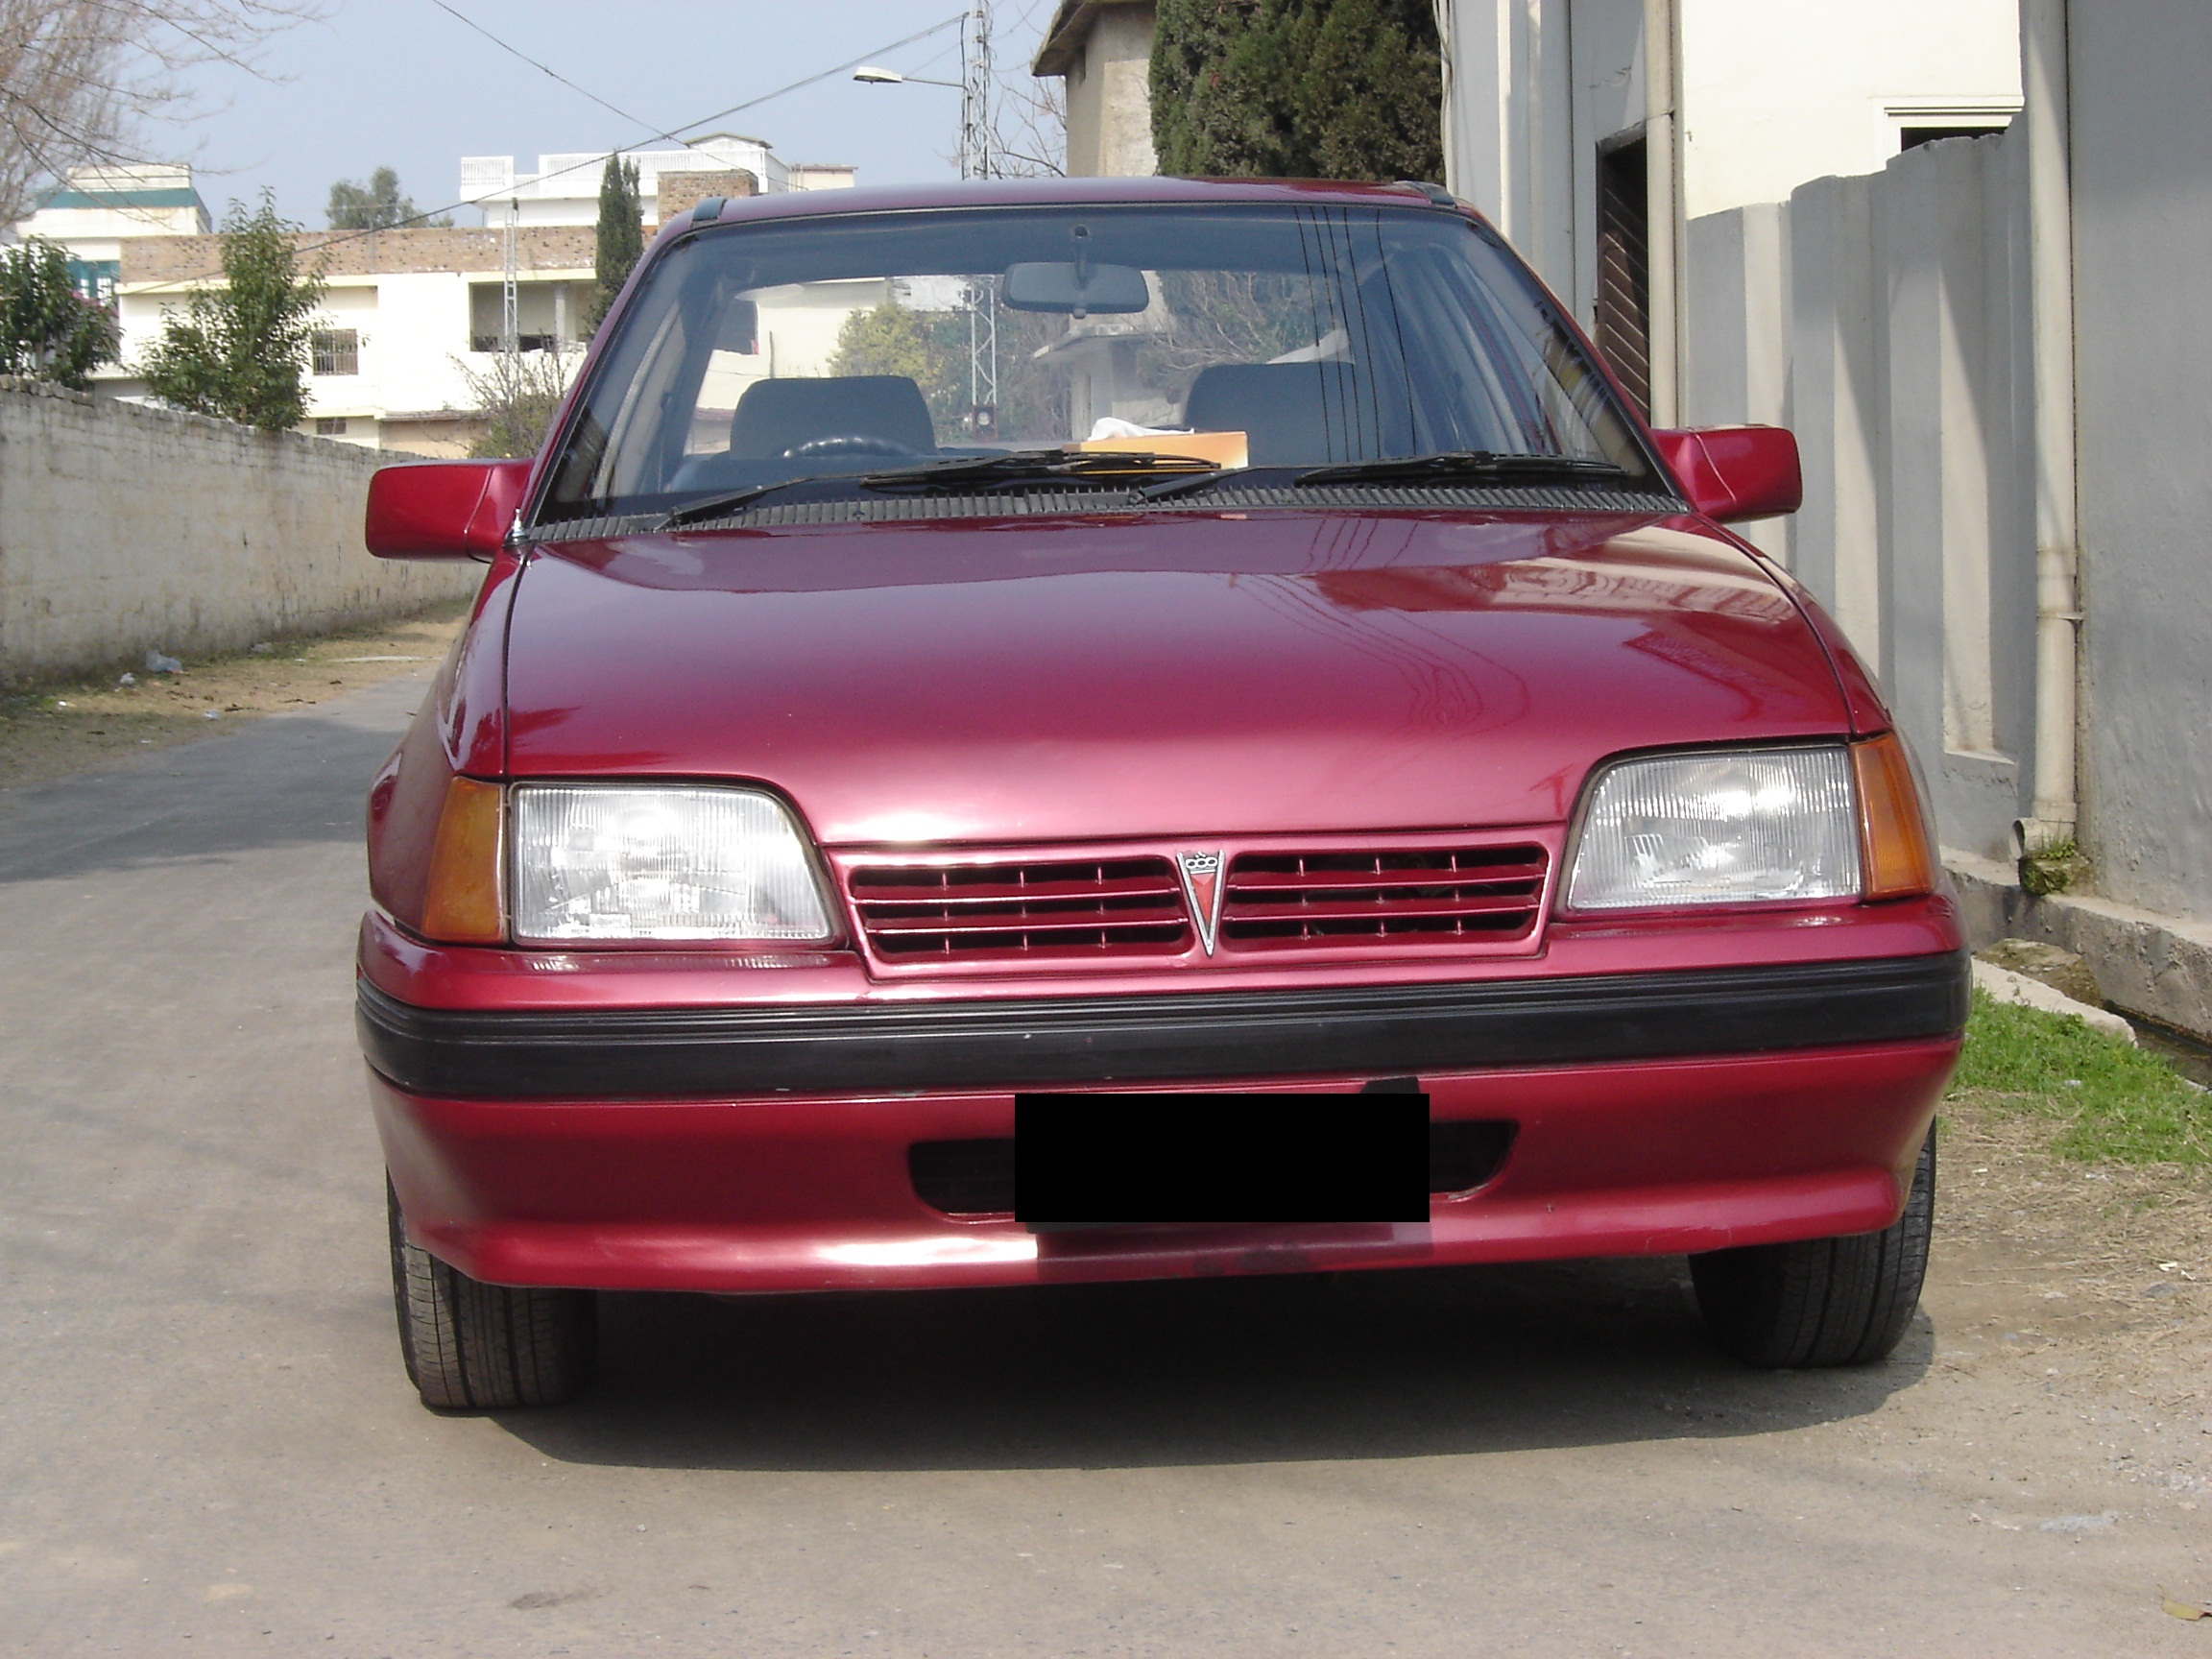 Nissan Used Parts Daewoo Racer 2001 of sheikh_wah - Member Ride 16725 ...